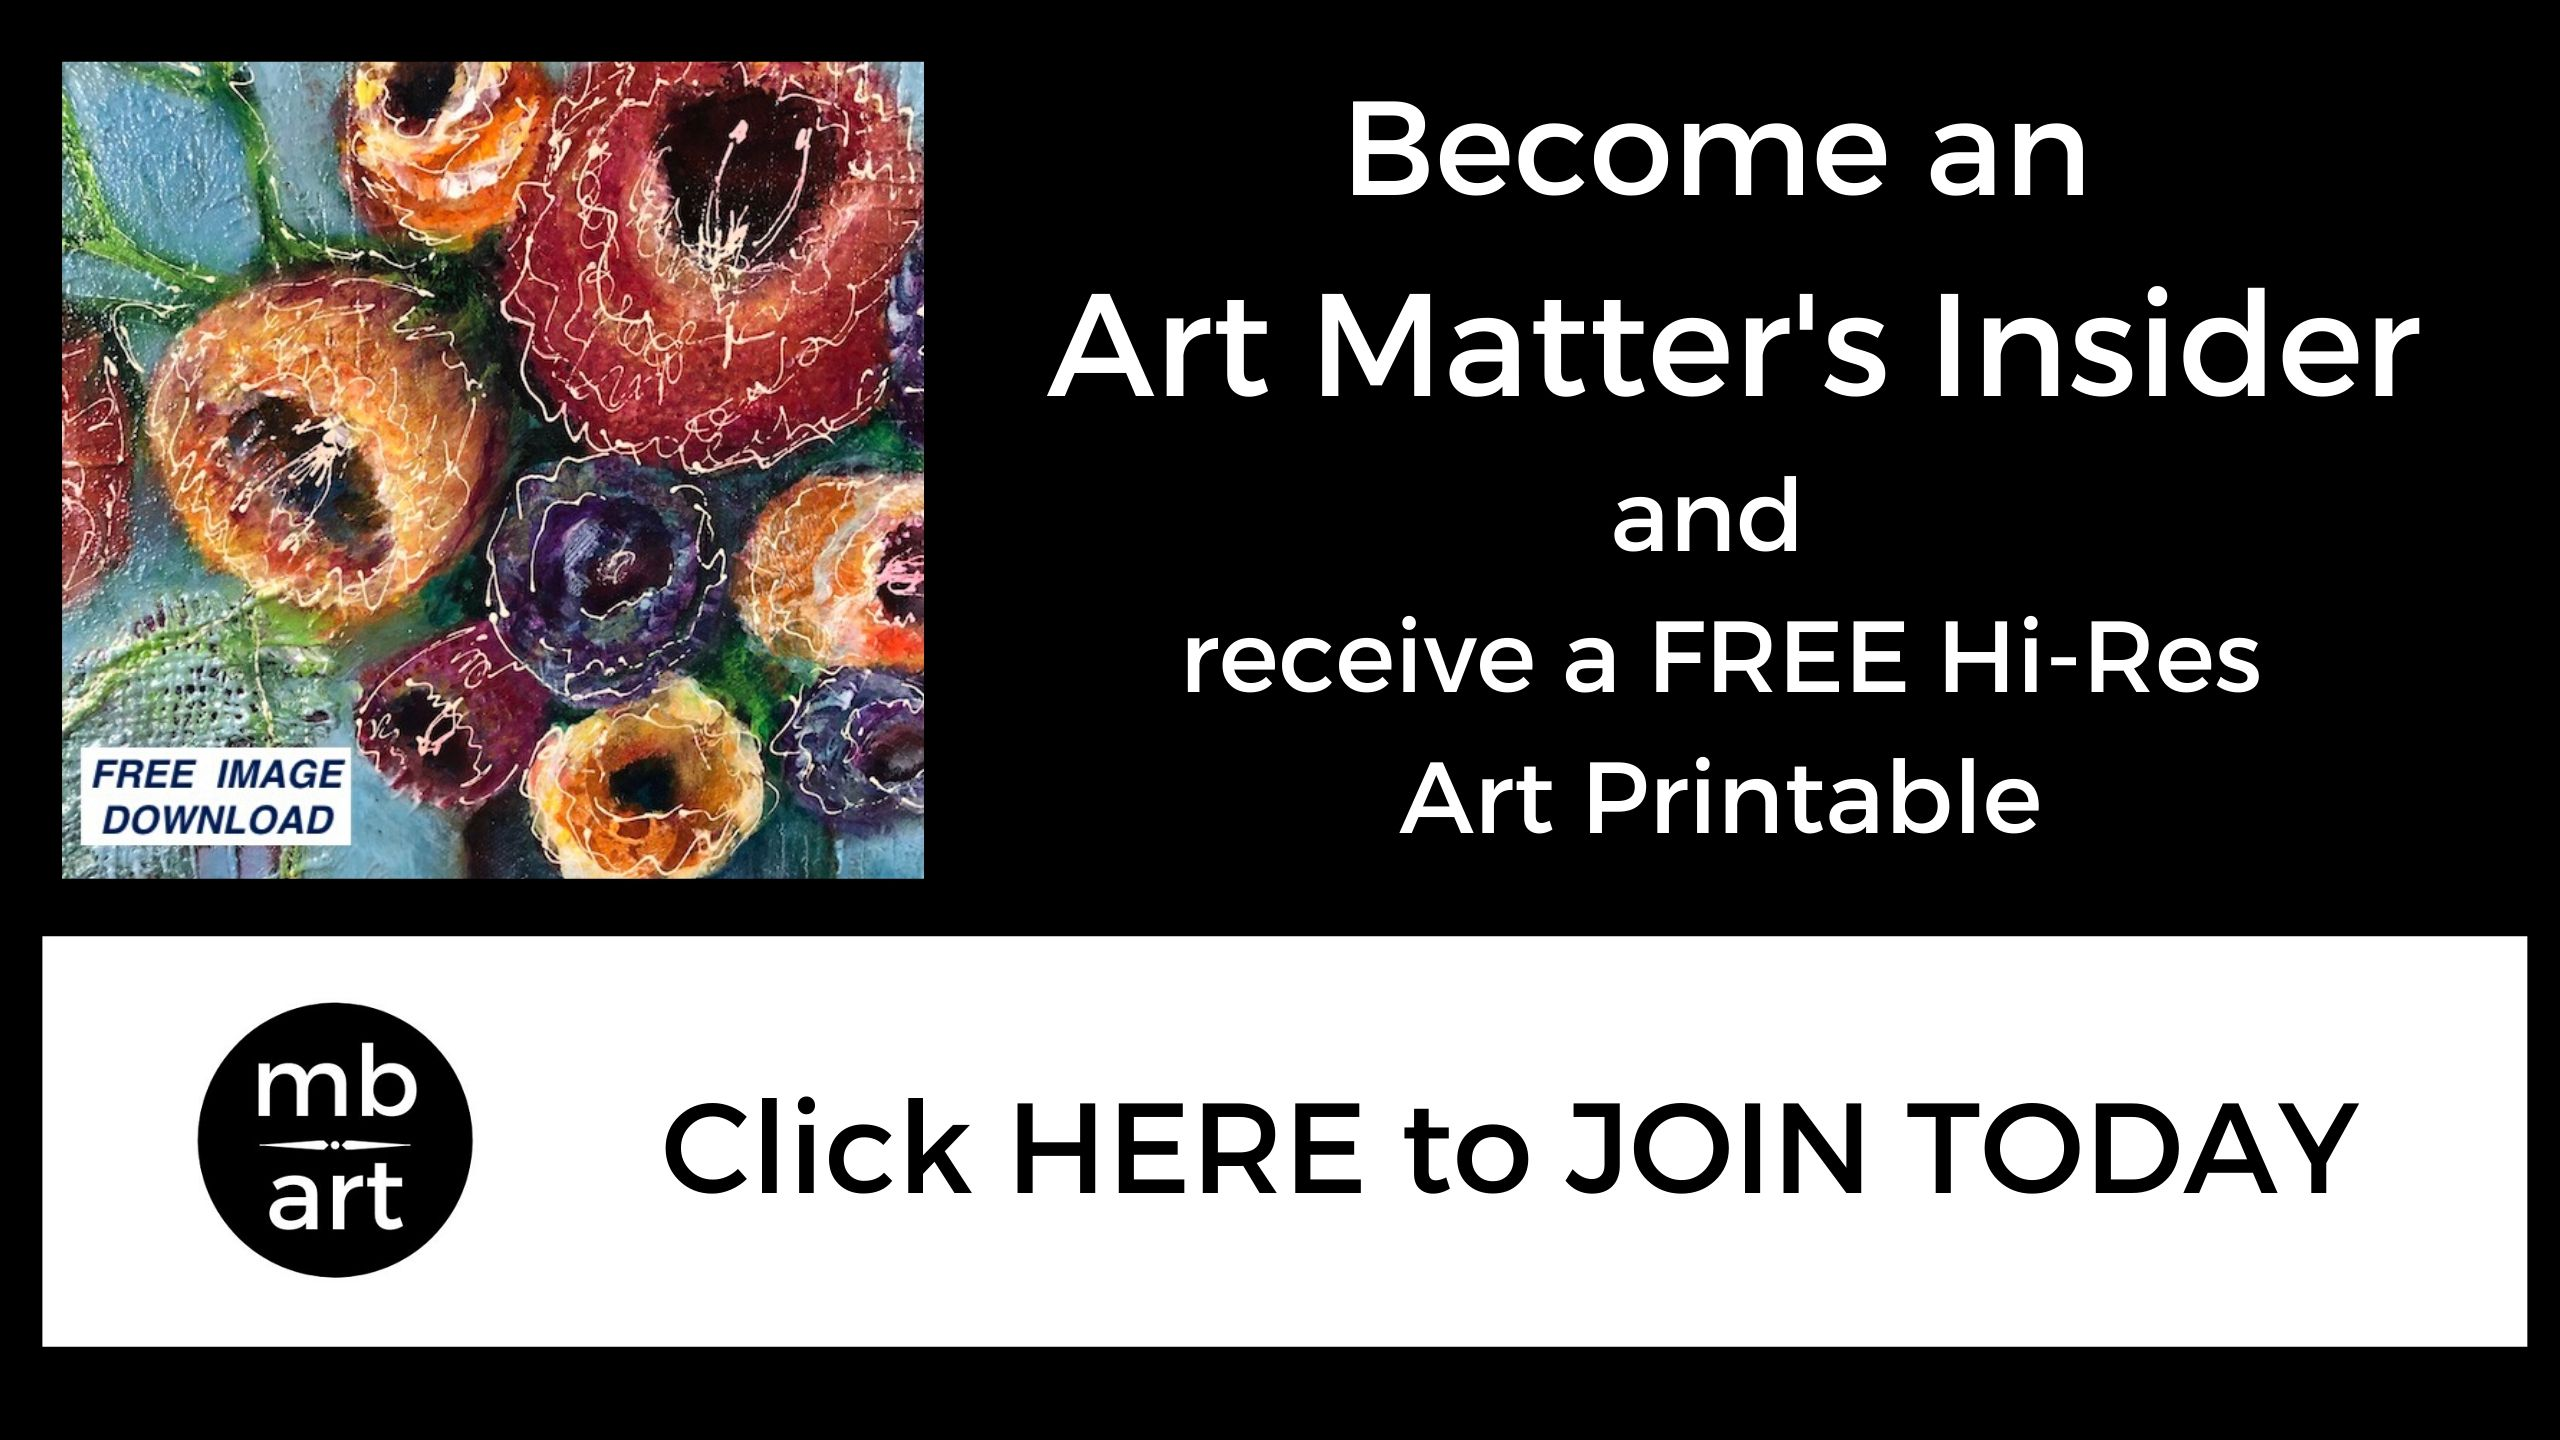 invitation to join Melissa Brauen's newsletter offering free downloadable print